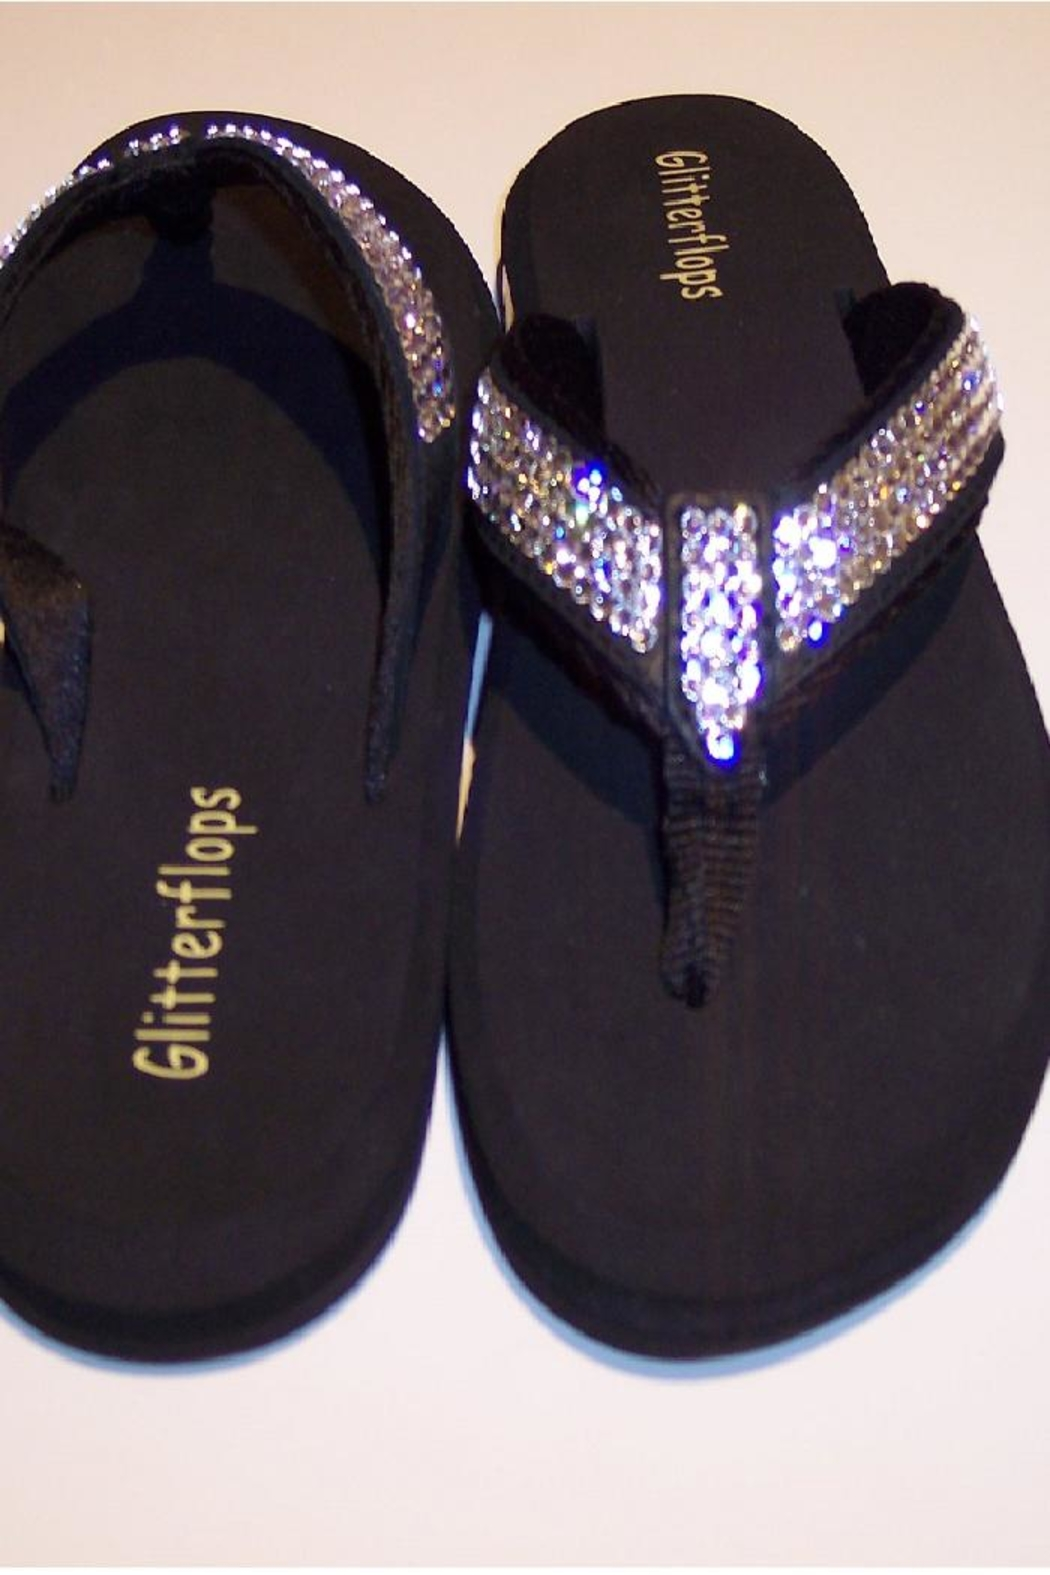 49e4cfe80 Glitterflops Full Crystal Flipflops from Texas by Rock2Royal ...